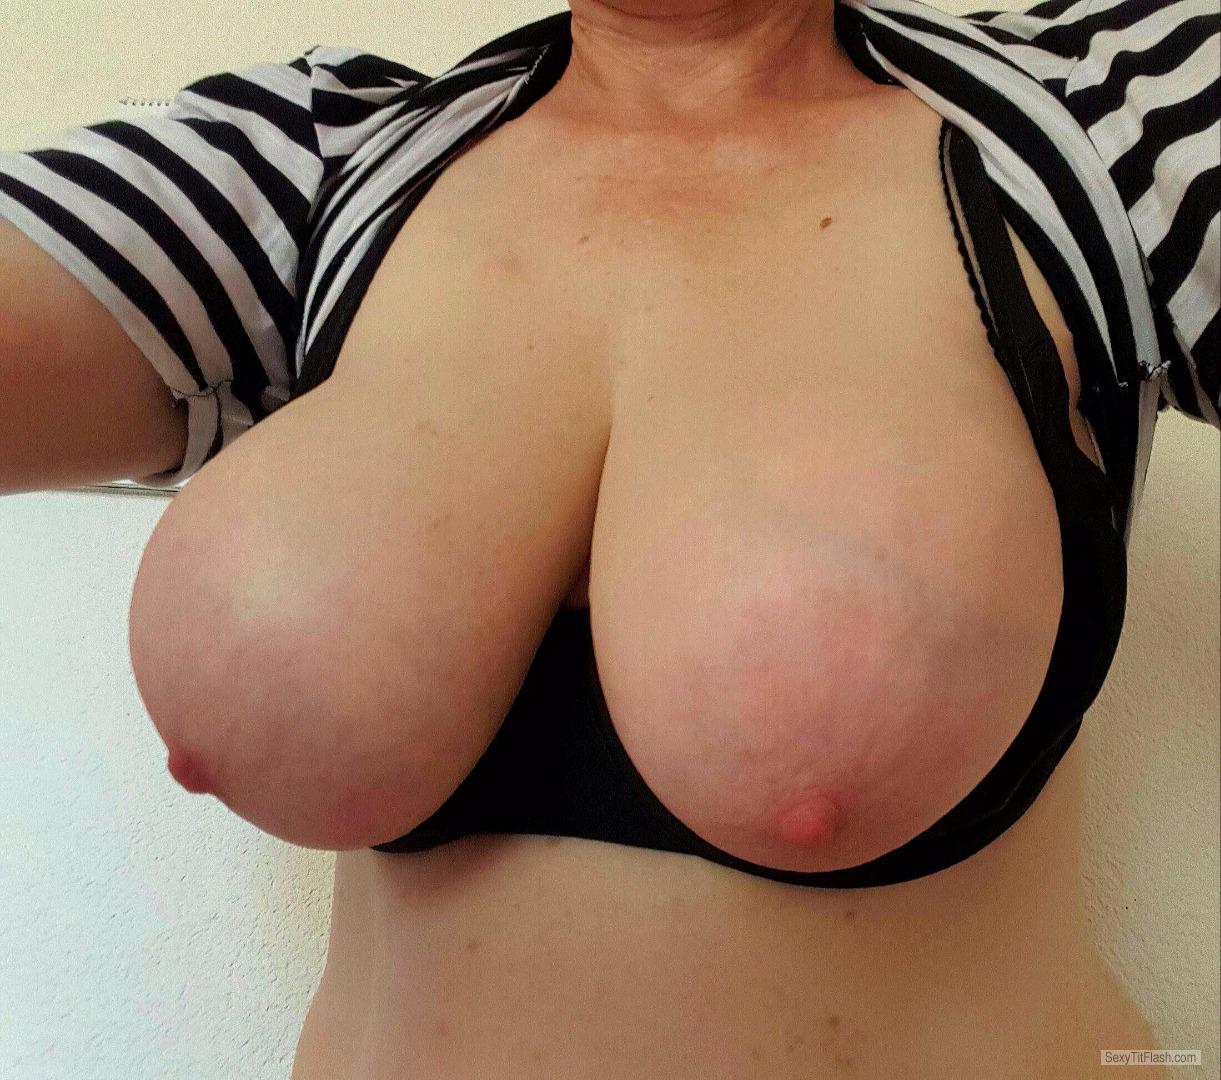 My Very big Tits Selfie by Toplesd